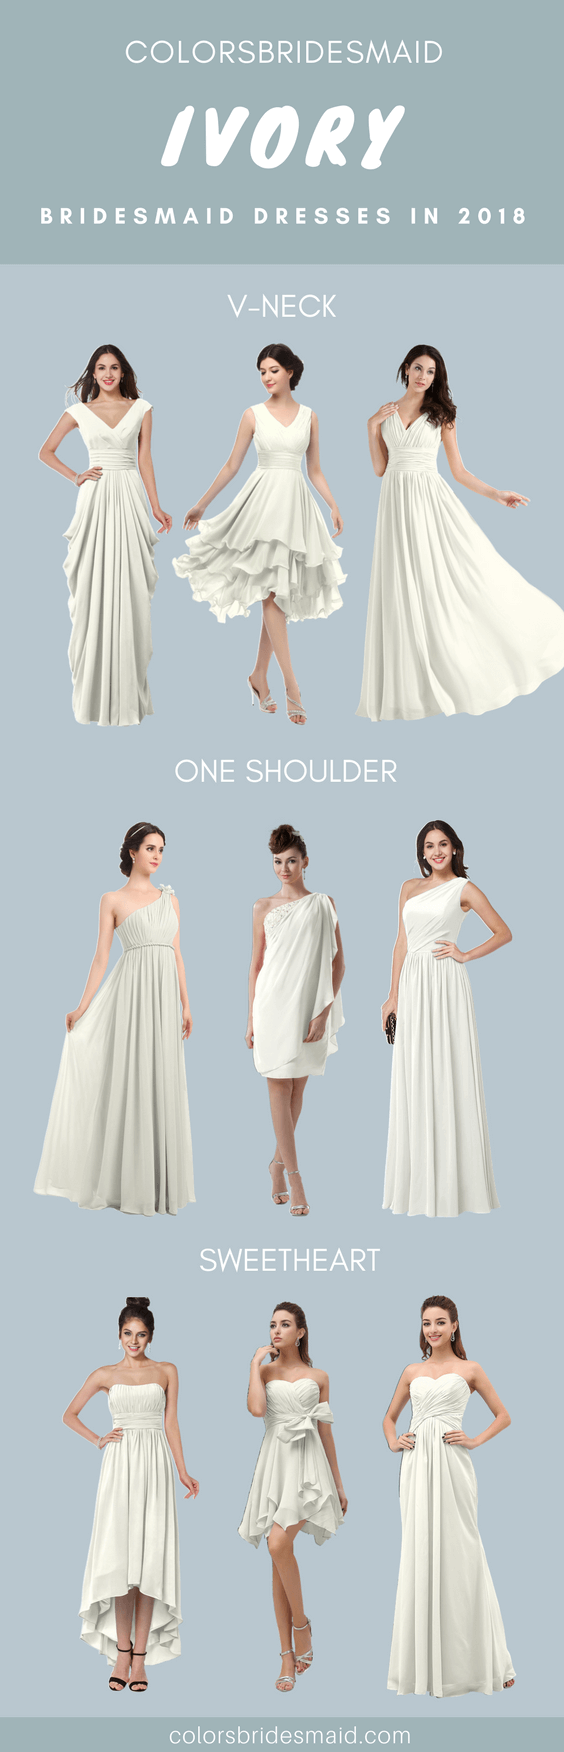 Ivory Bridesmaid Dresses in 2018 with Great Styles